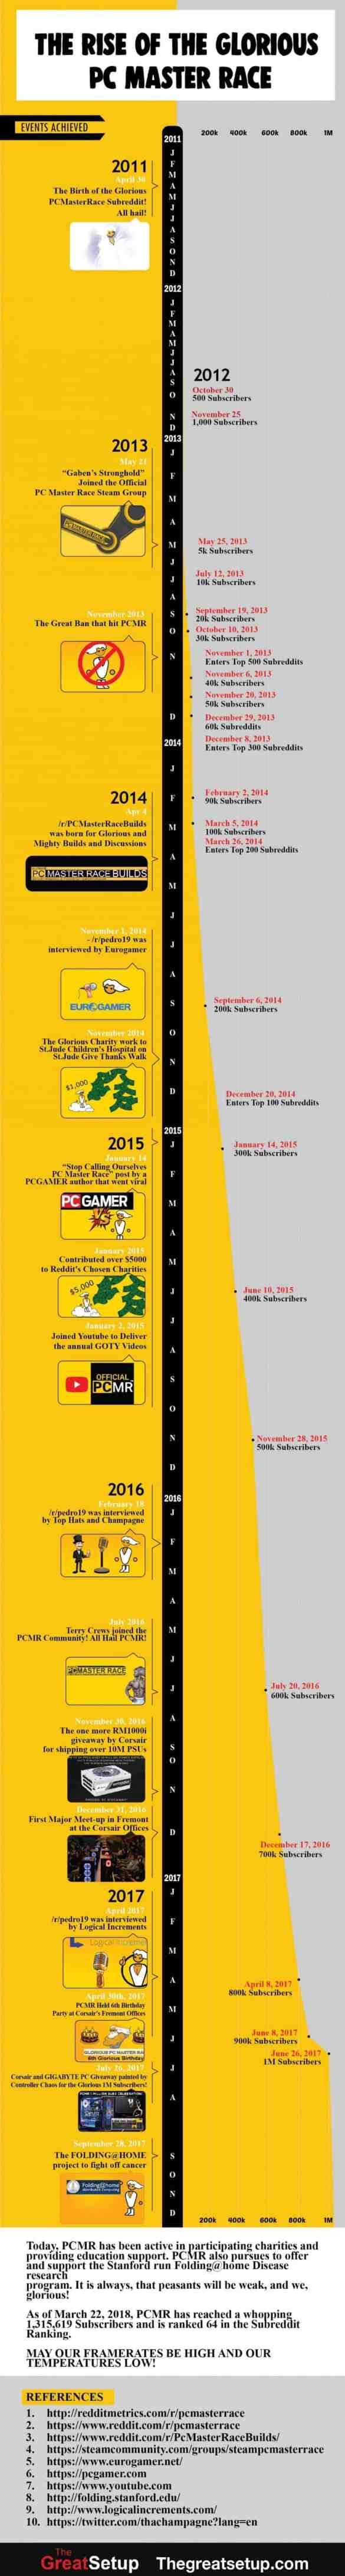 The Rise of the Glorious PC Gaming Master Race